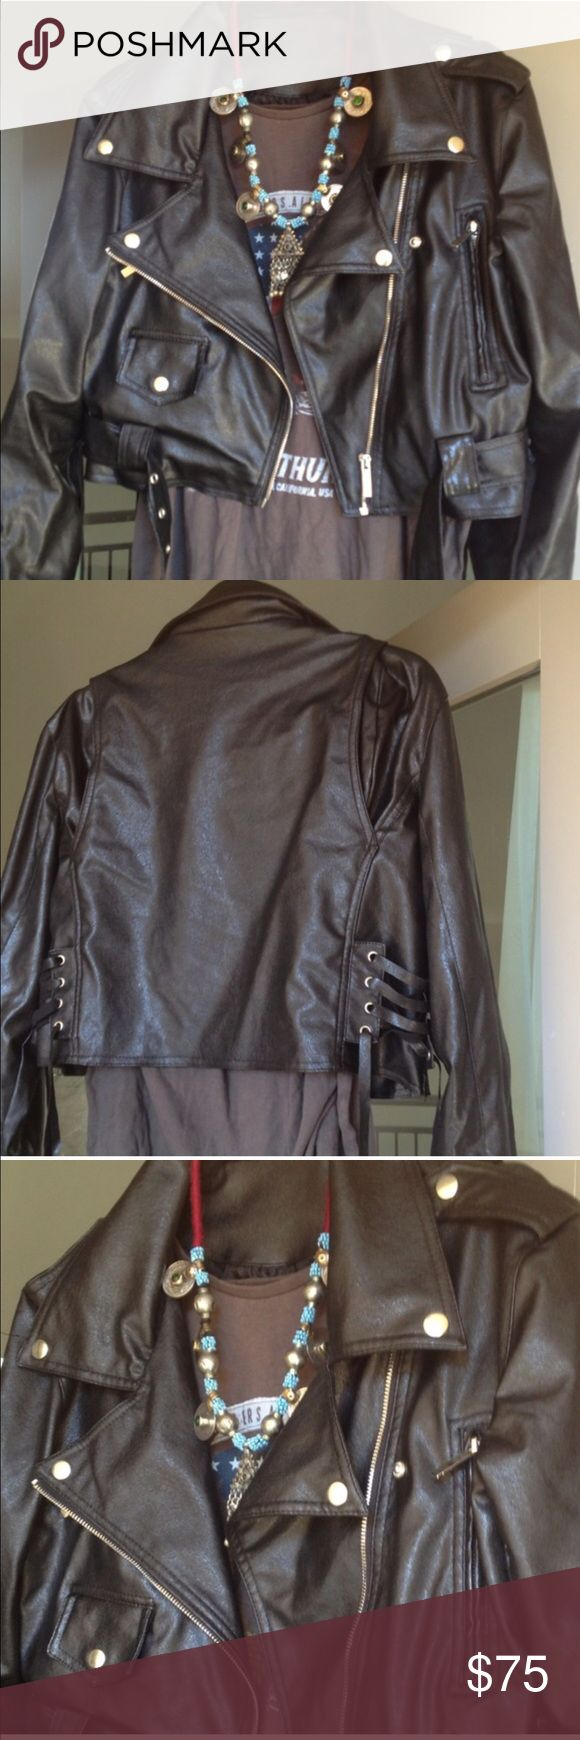 Perfect black faux leather cropped jacket Black faux leather cropped jacket Jackets & Coats